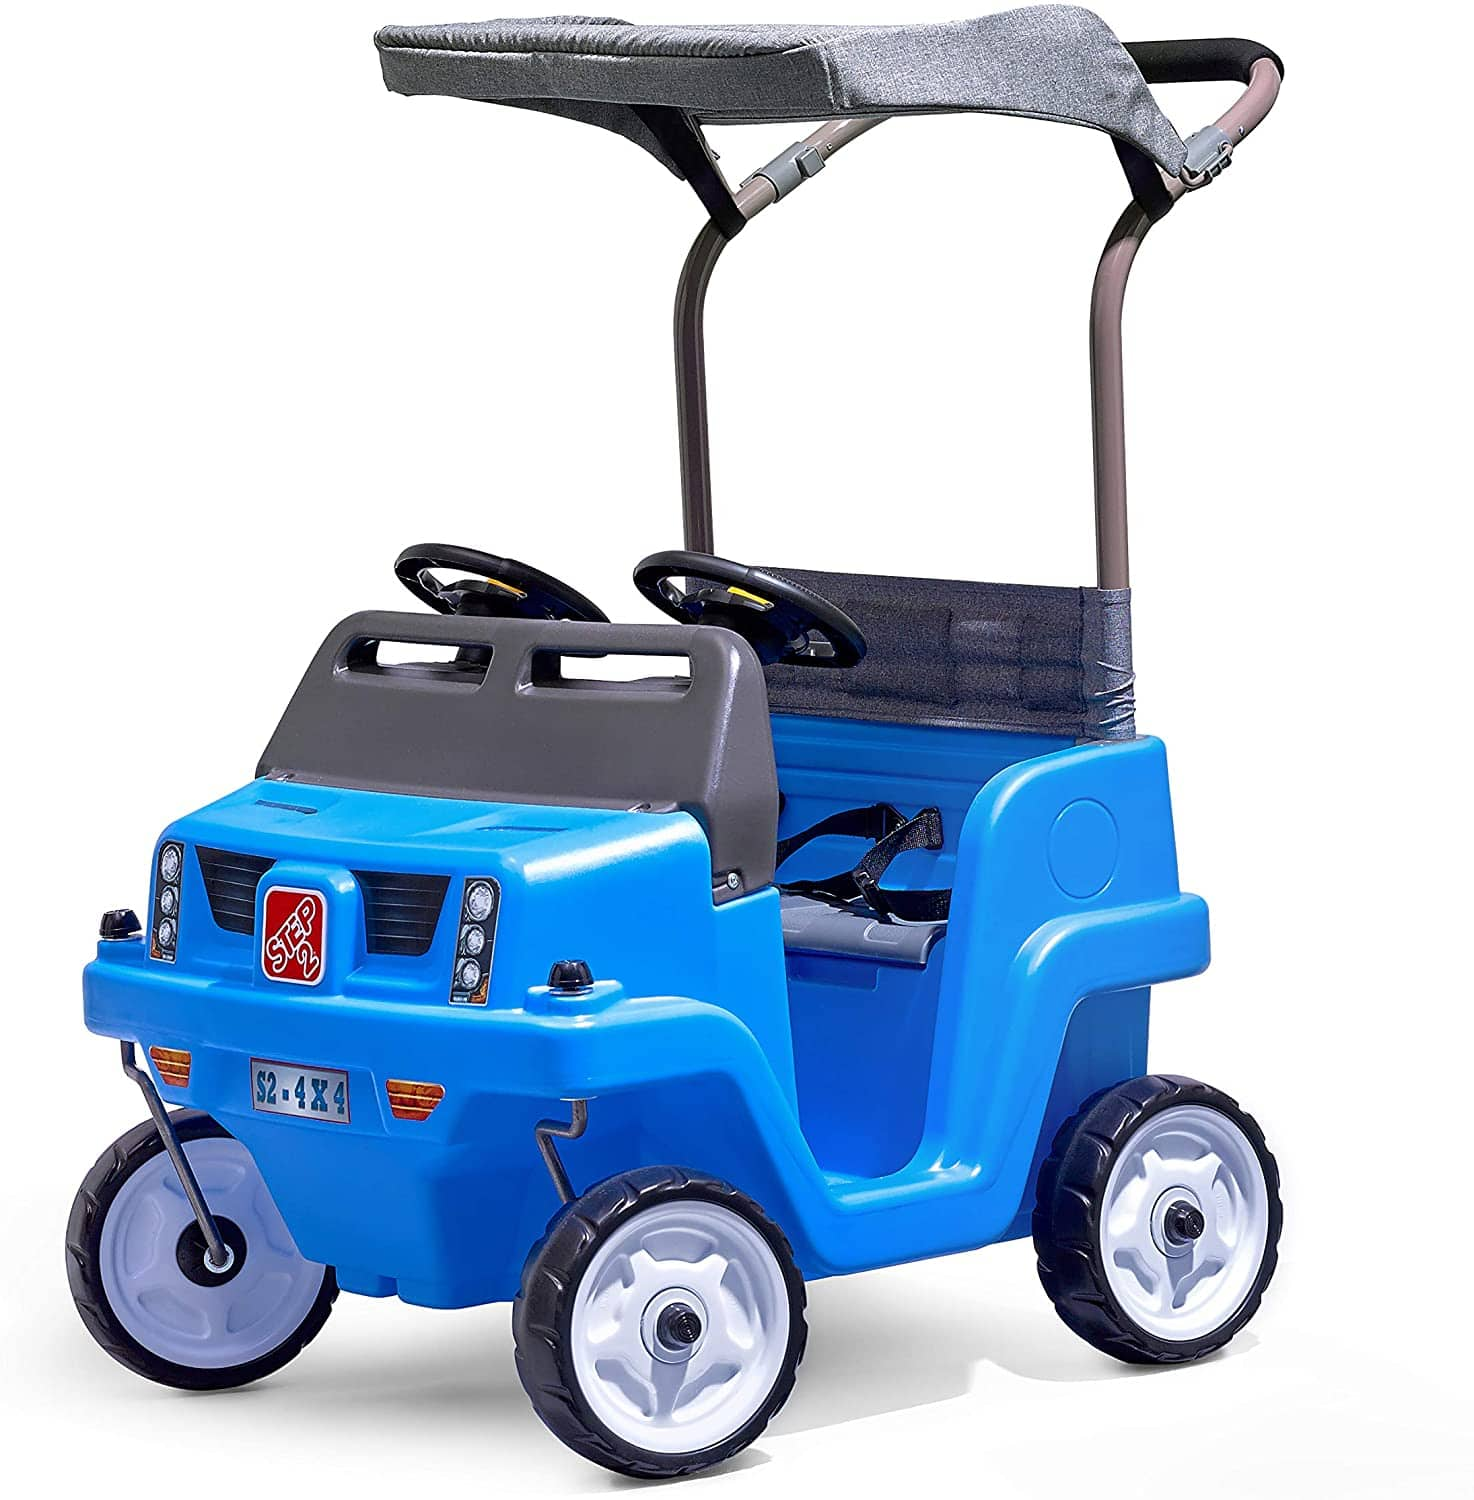 Step2 Side-by-Side Push Around SUV Two-Seater Push Car $110 at Amazon